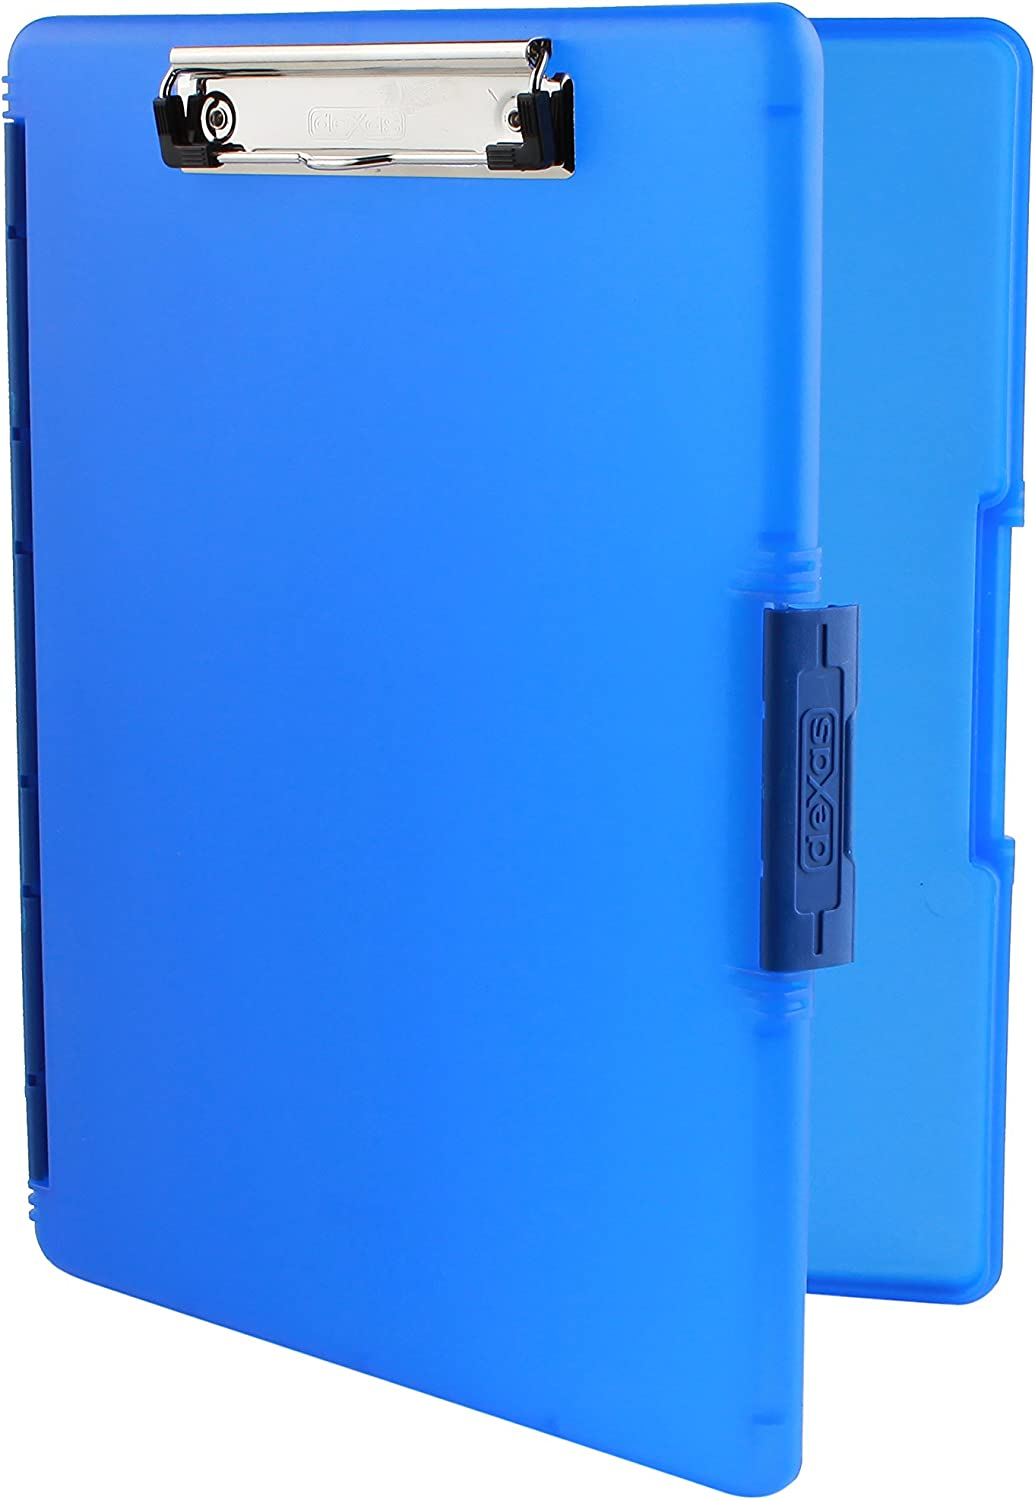 Dexas 3517-J2728 Super beauty product restock quality top Slimcase 2 Storage Opening with Side Free shipping anywhere in the nation Clipboard